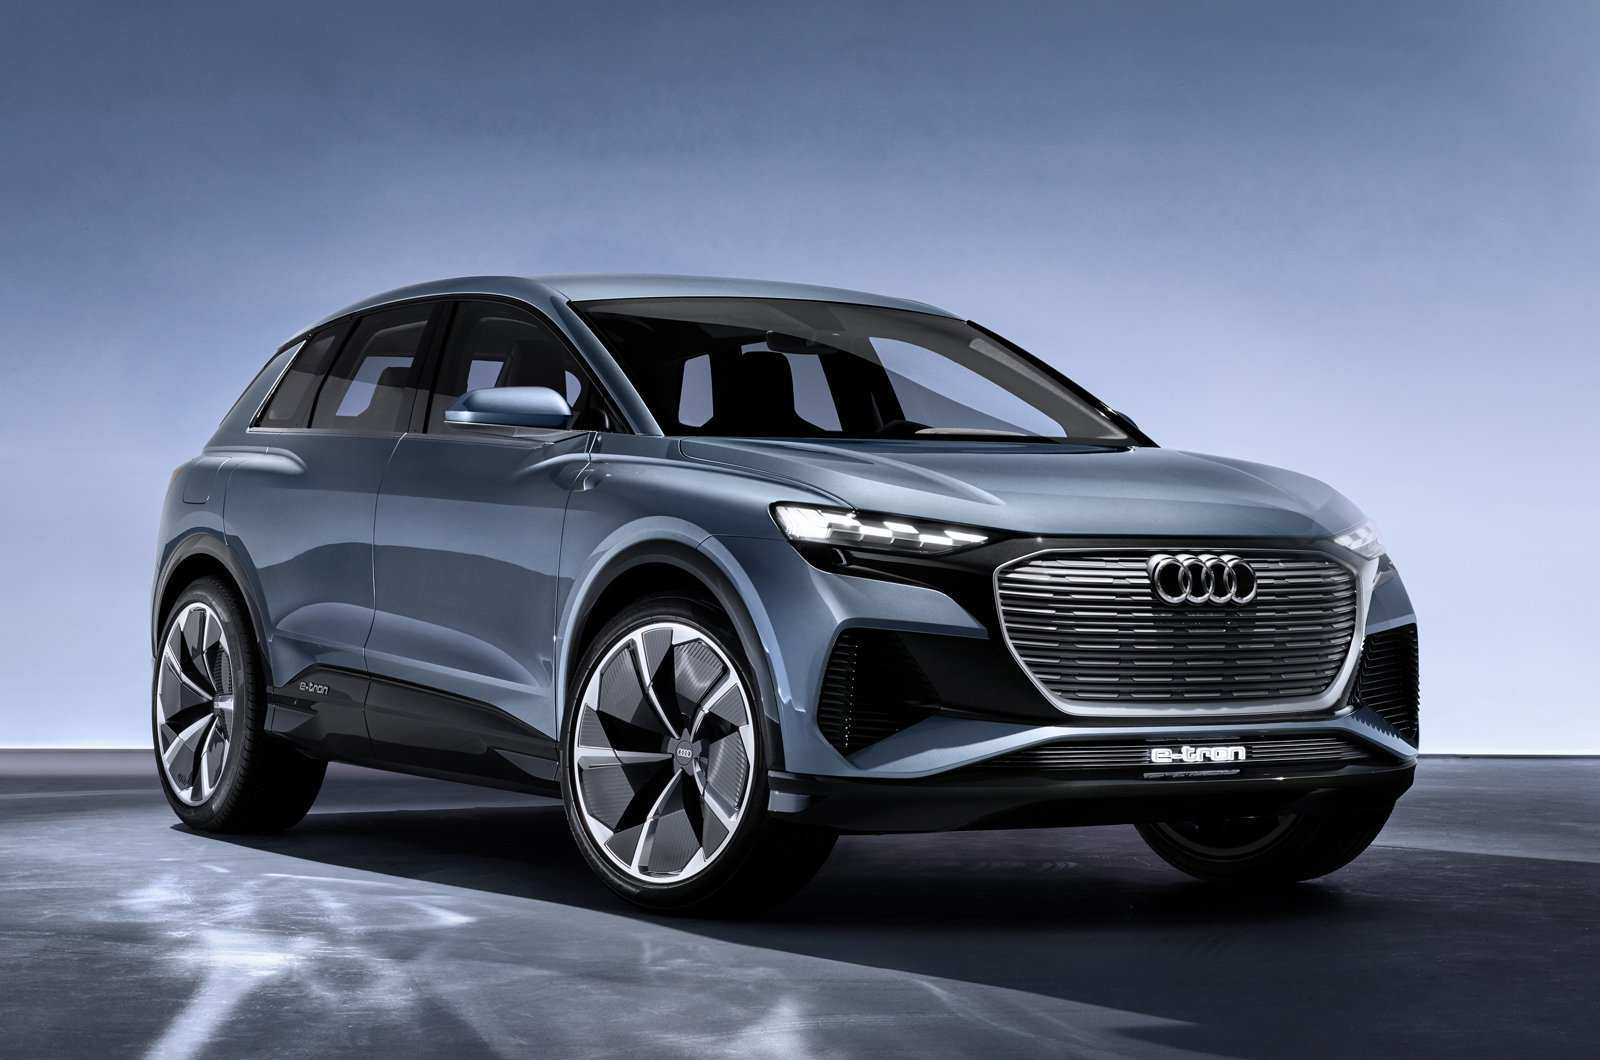 62 Concept of Audi Electric Suv 2020 Review with Audi Electric Suv 2020